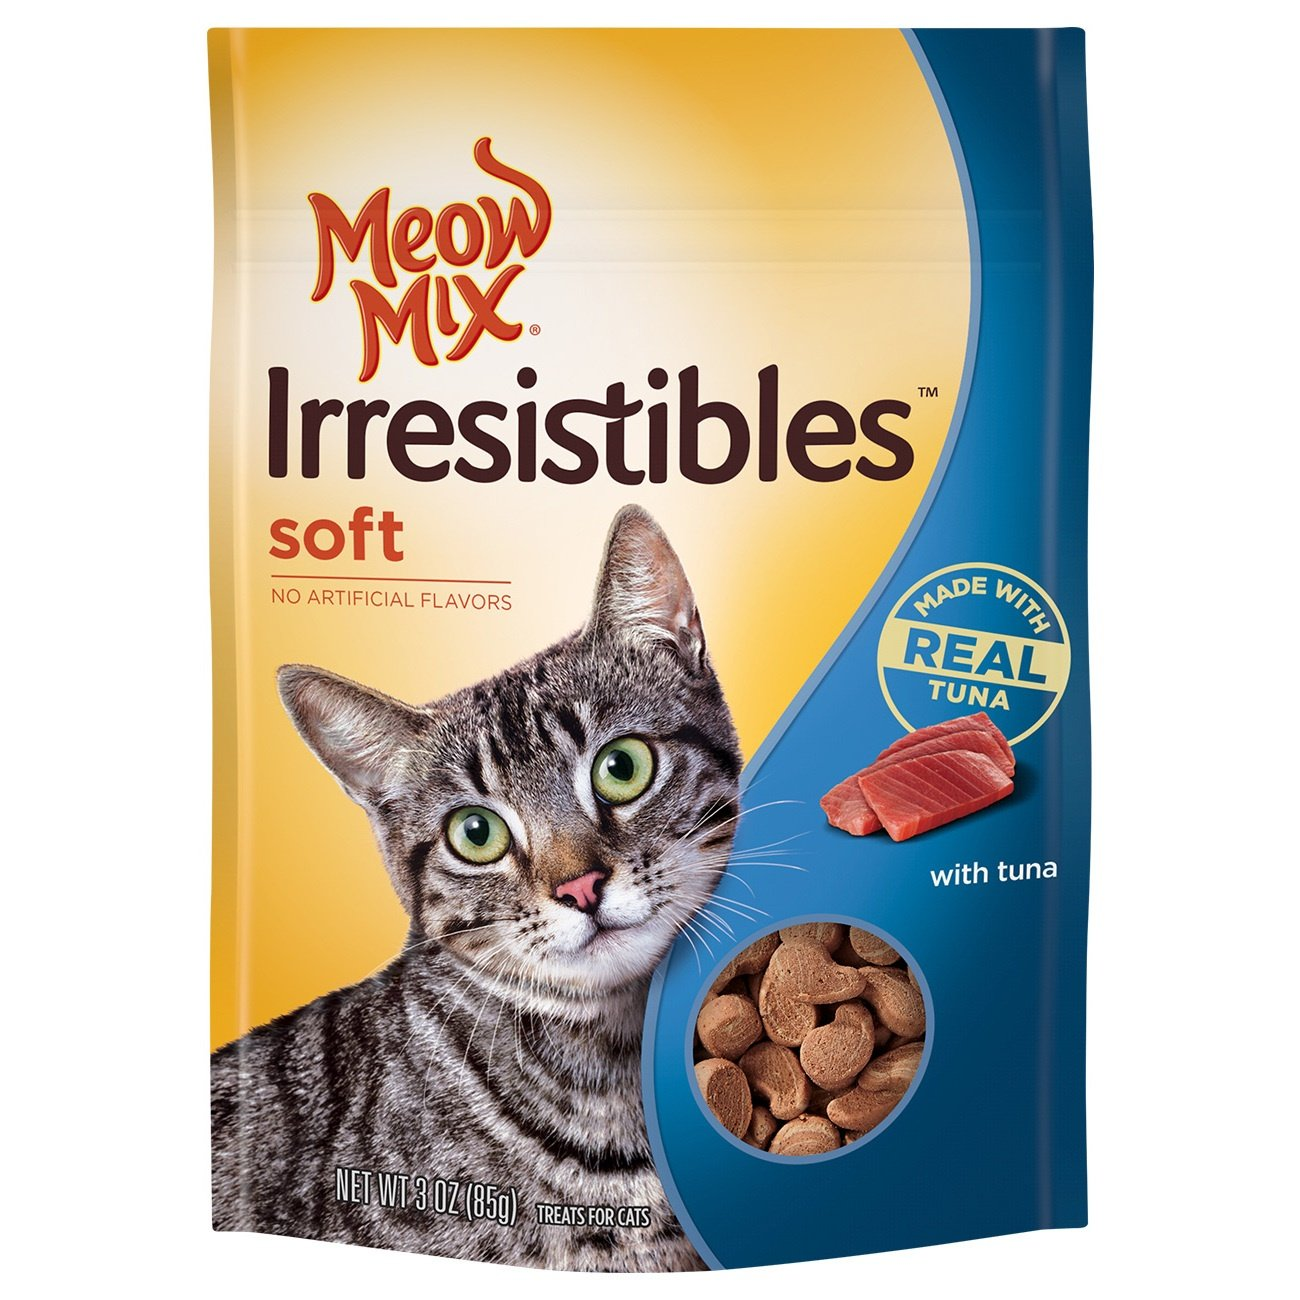 3 Ounce (Pack of 5) Meow Mix Irresistibles Soft Cat Treats with Real Tuna, 3 Oz (Pack of 5)